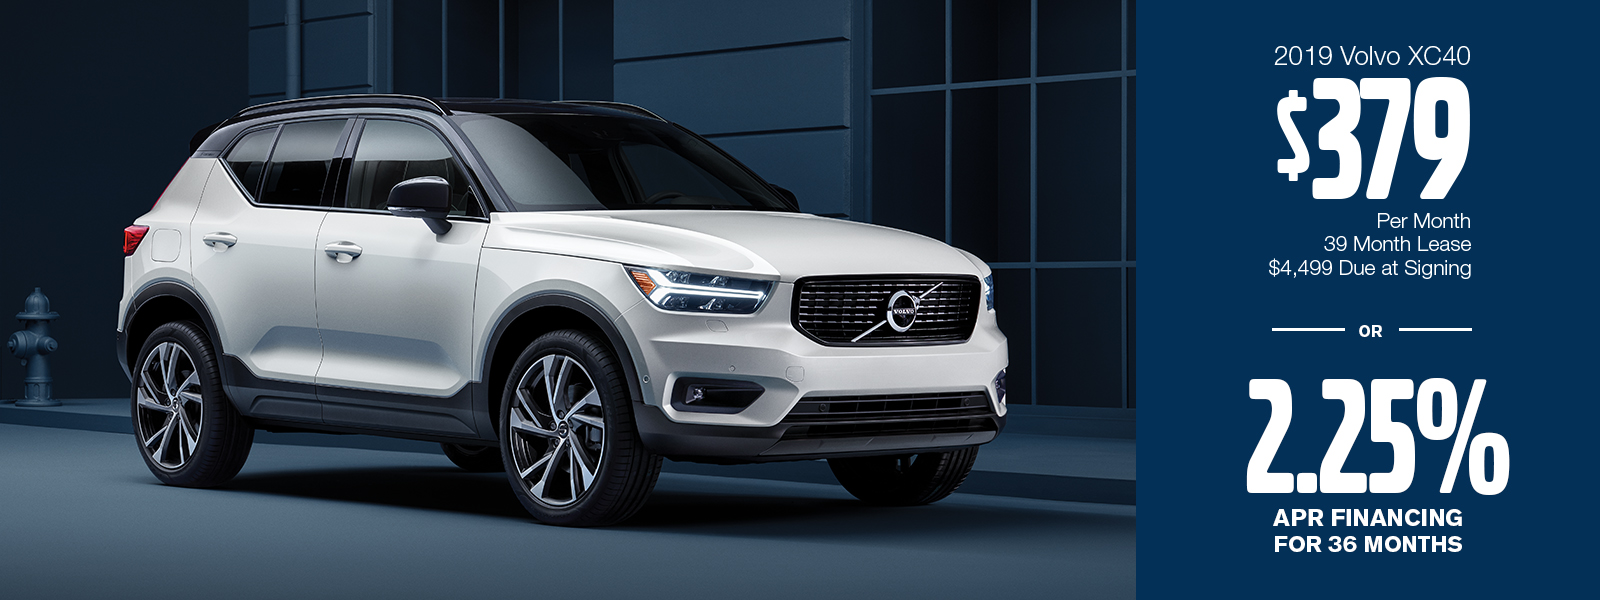 new 2019 volvo xc40 sales or lease specials gilbert az. Black Bedroom Furniture Sets. Home Design Ideas